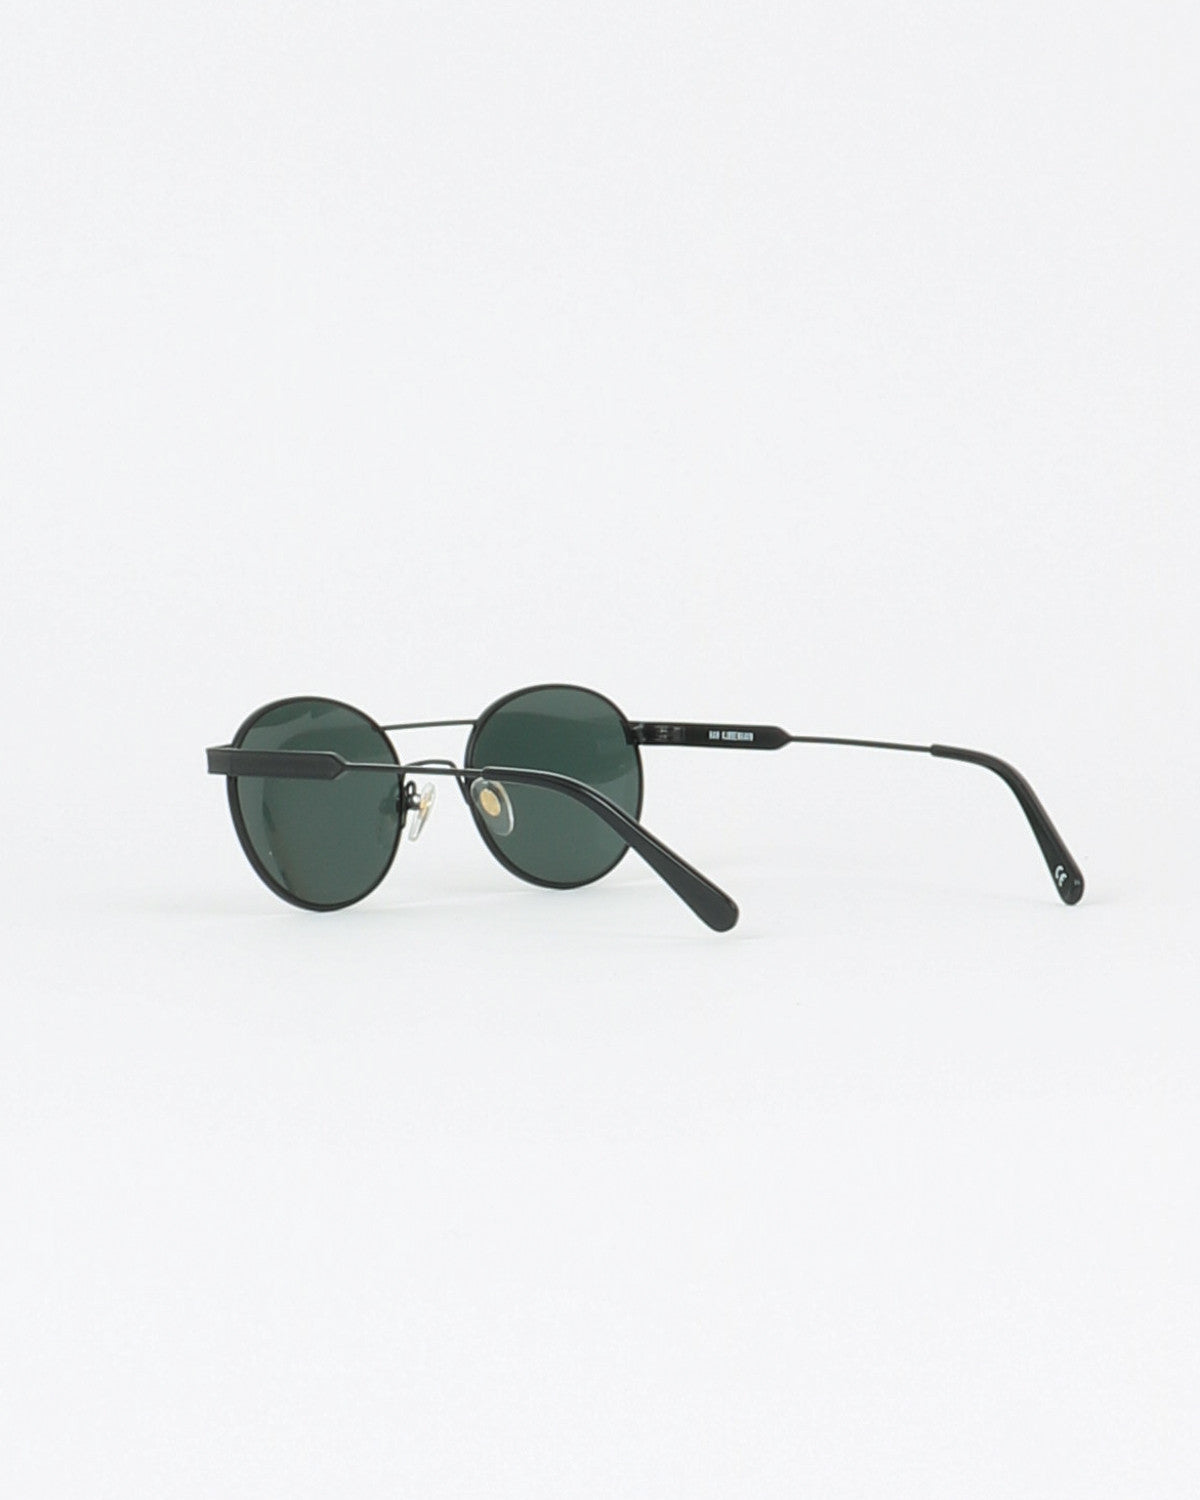 han kjobenhavn_green sunglasses_black matt_view_2_4